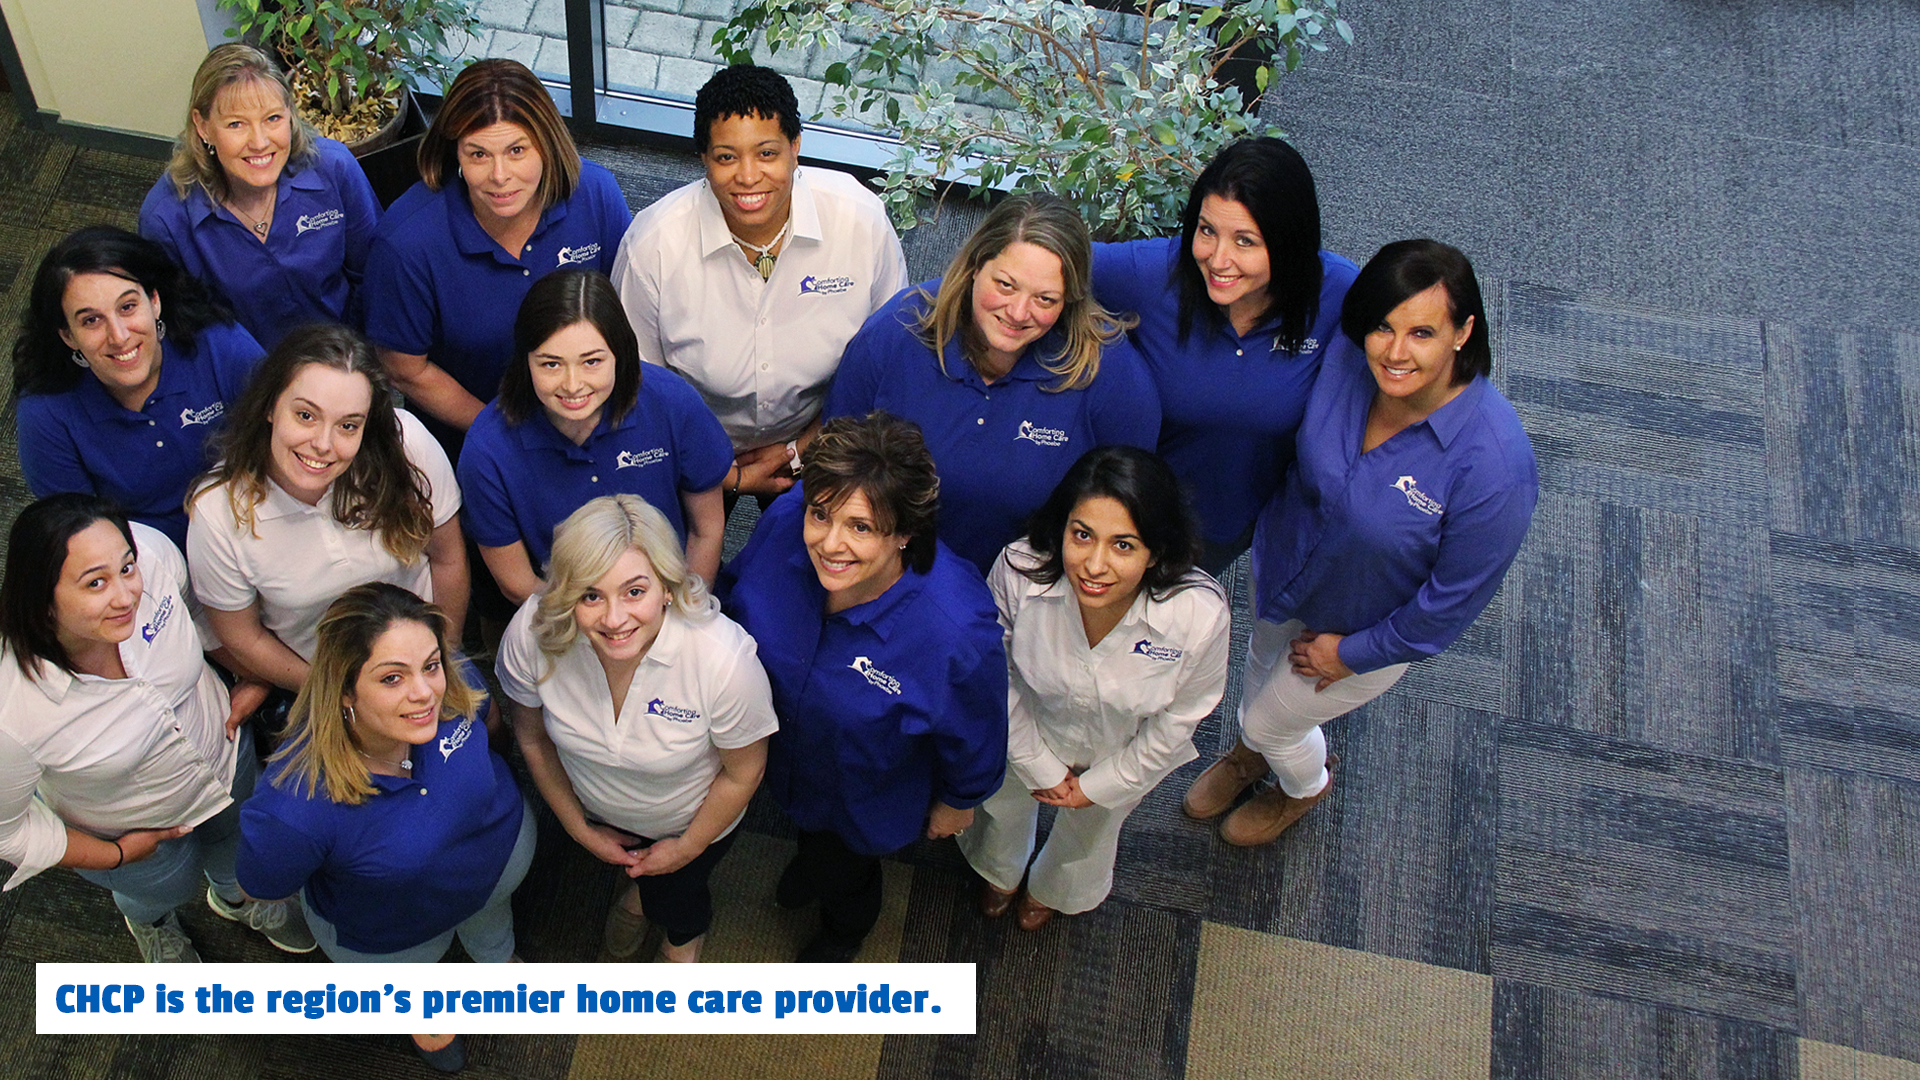 The Lehigh Valley's premier home care provider